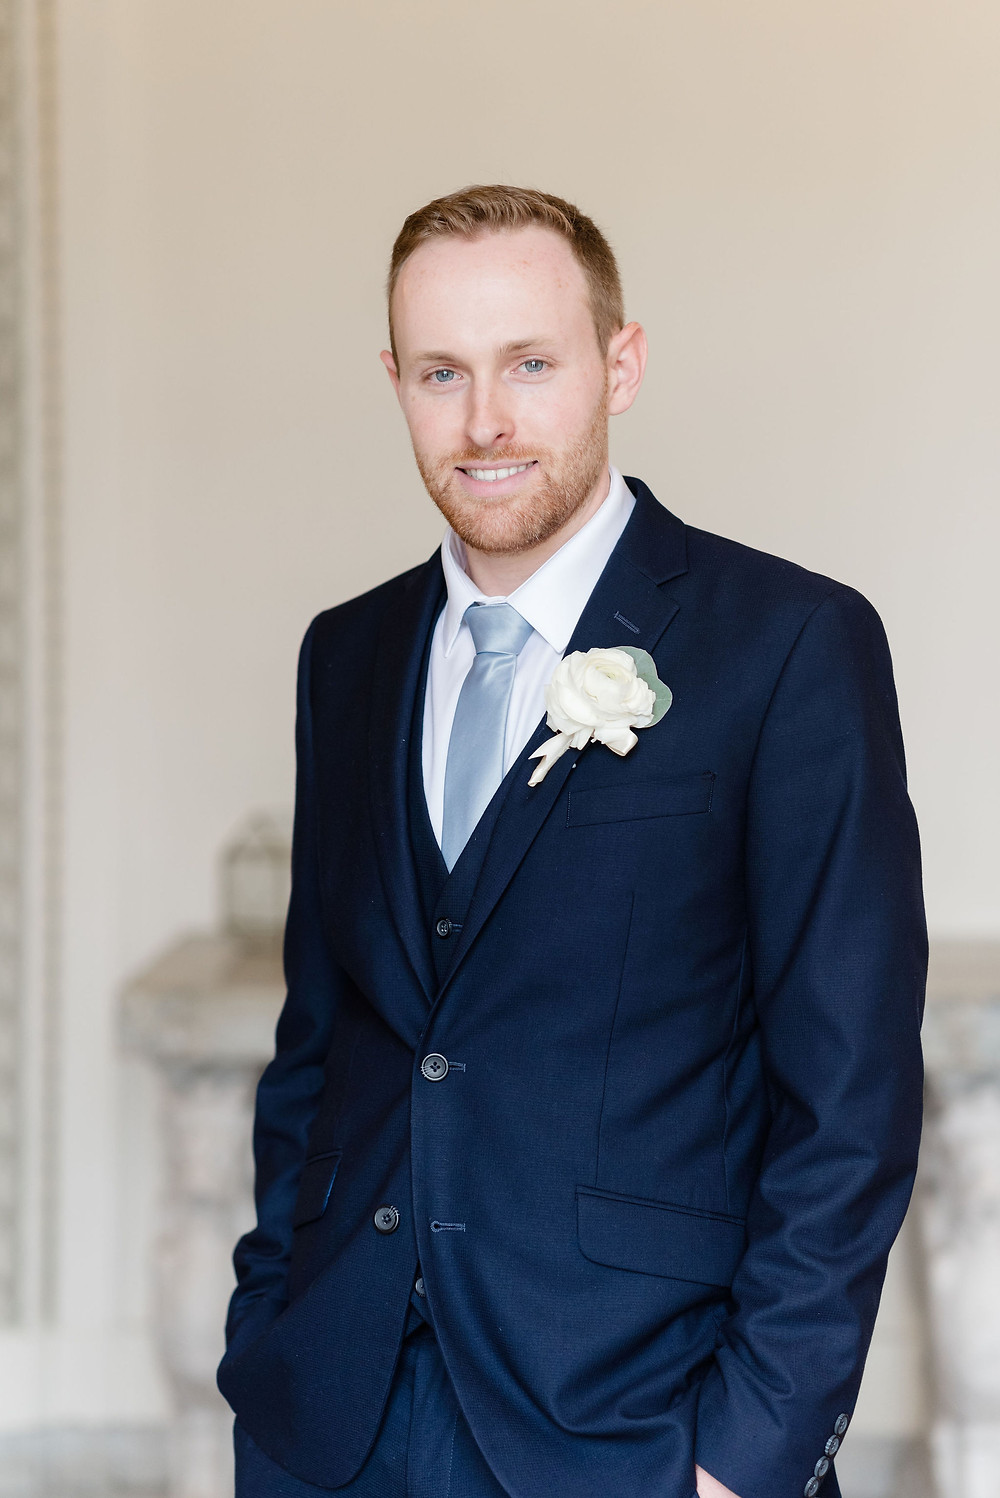 photo of groom looking at the camera